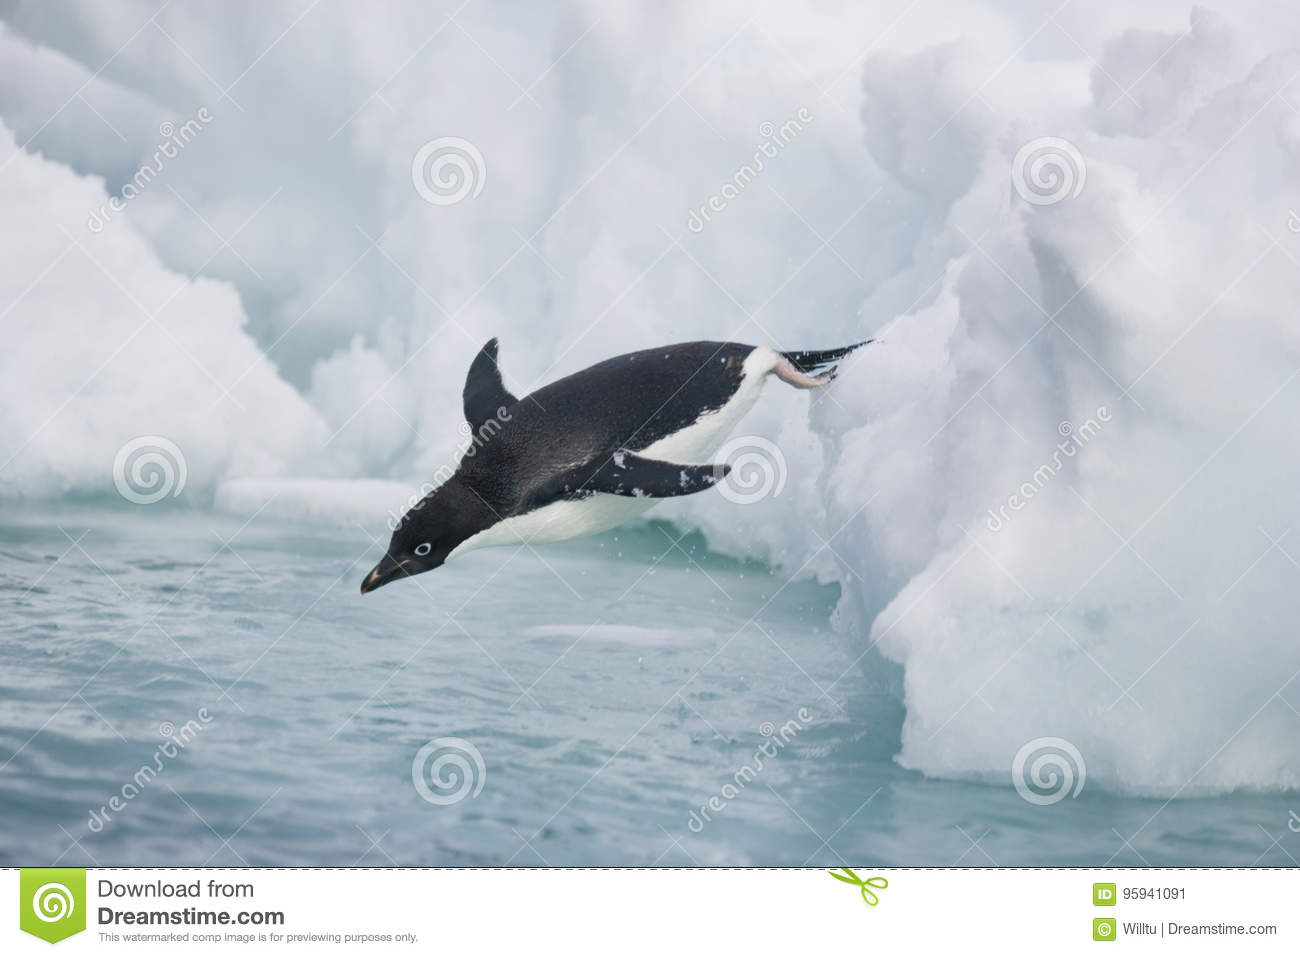 Ready for splashdown, an Adelie penguin goes into the water off Antarctica